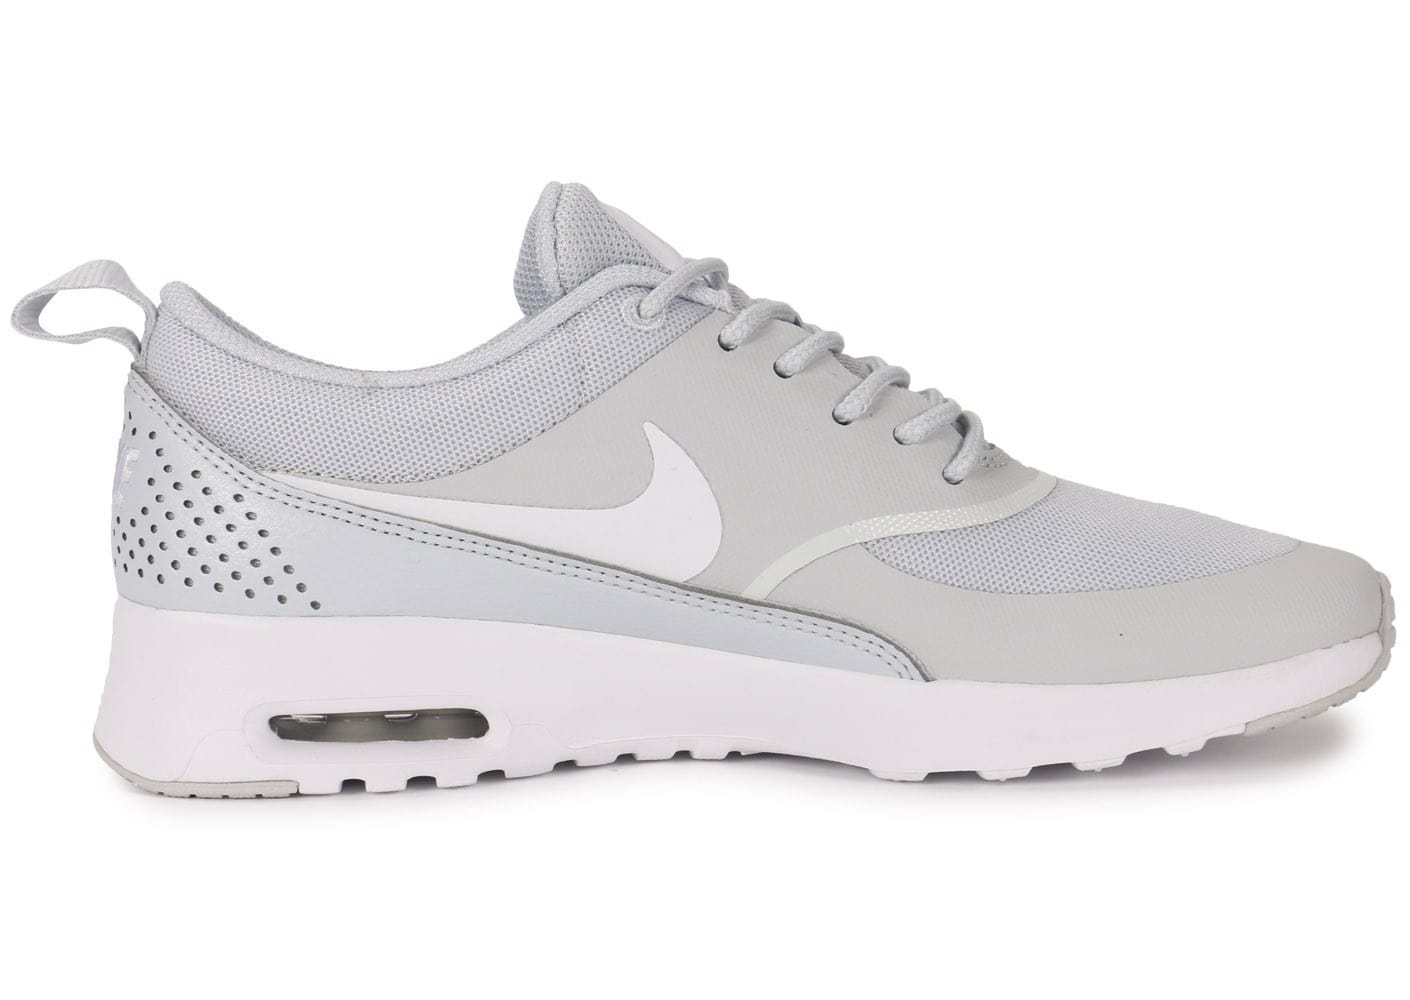 check out ad7f6 d4b51 ... Chaussures Nike Air Max Thea grise vue dessous ...